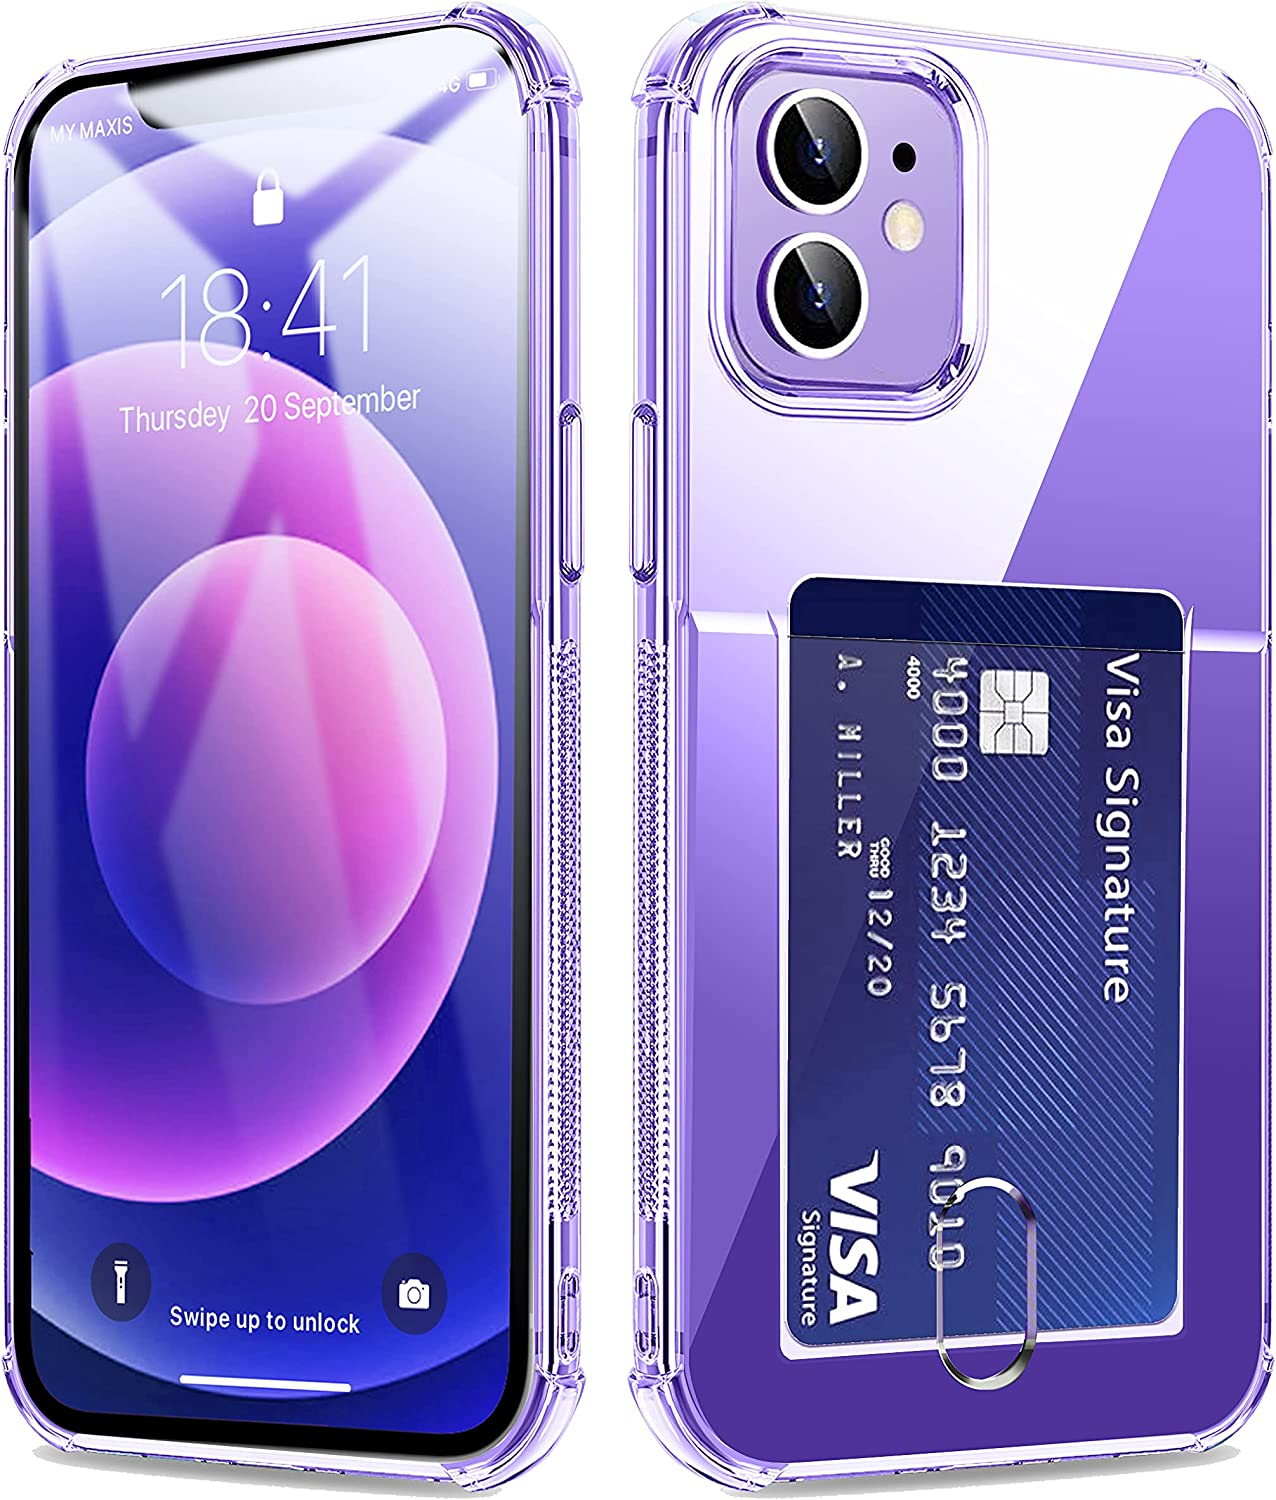 Crystal Clear iPhone 12 & iPhone 12 Pro Case with Card Holder, 360 Full Body Slim Fit Ultra Thin Coverage Protective Shockproof Wallet Case for iPhone 12 & 12 Pro 6.1 Inch 2020 (Clear)